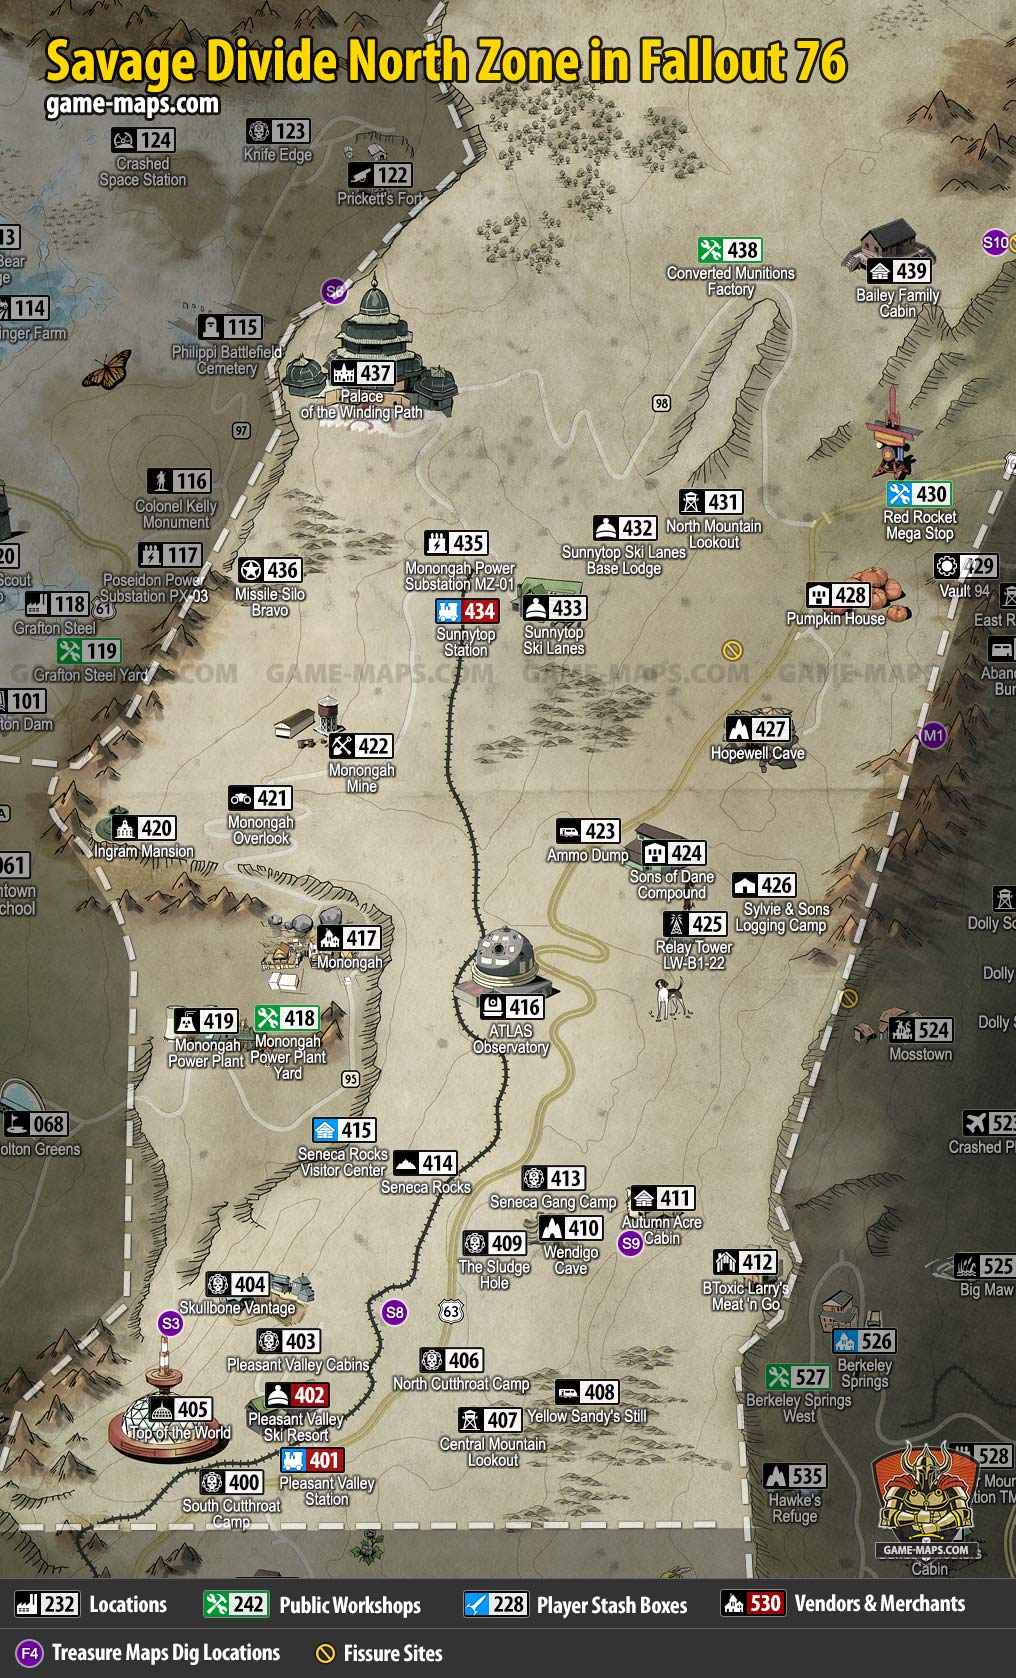 Savage Divide North Map for Fallout 76   game-maps.com